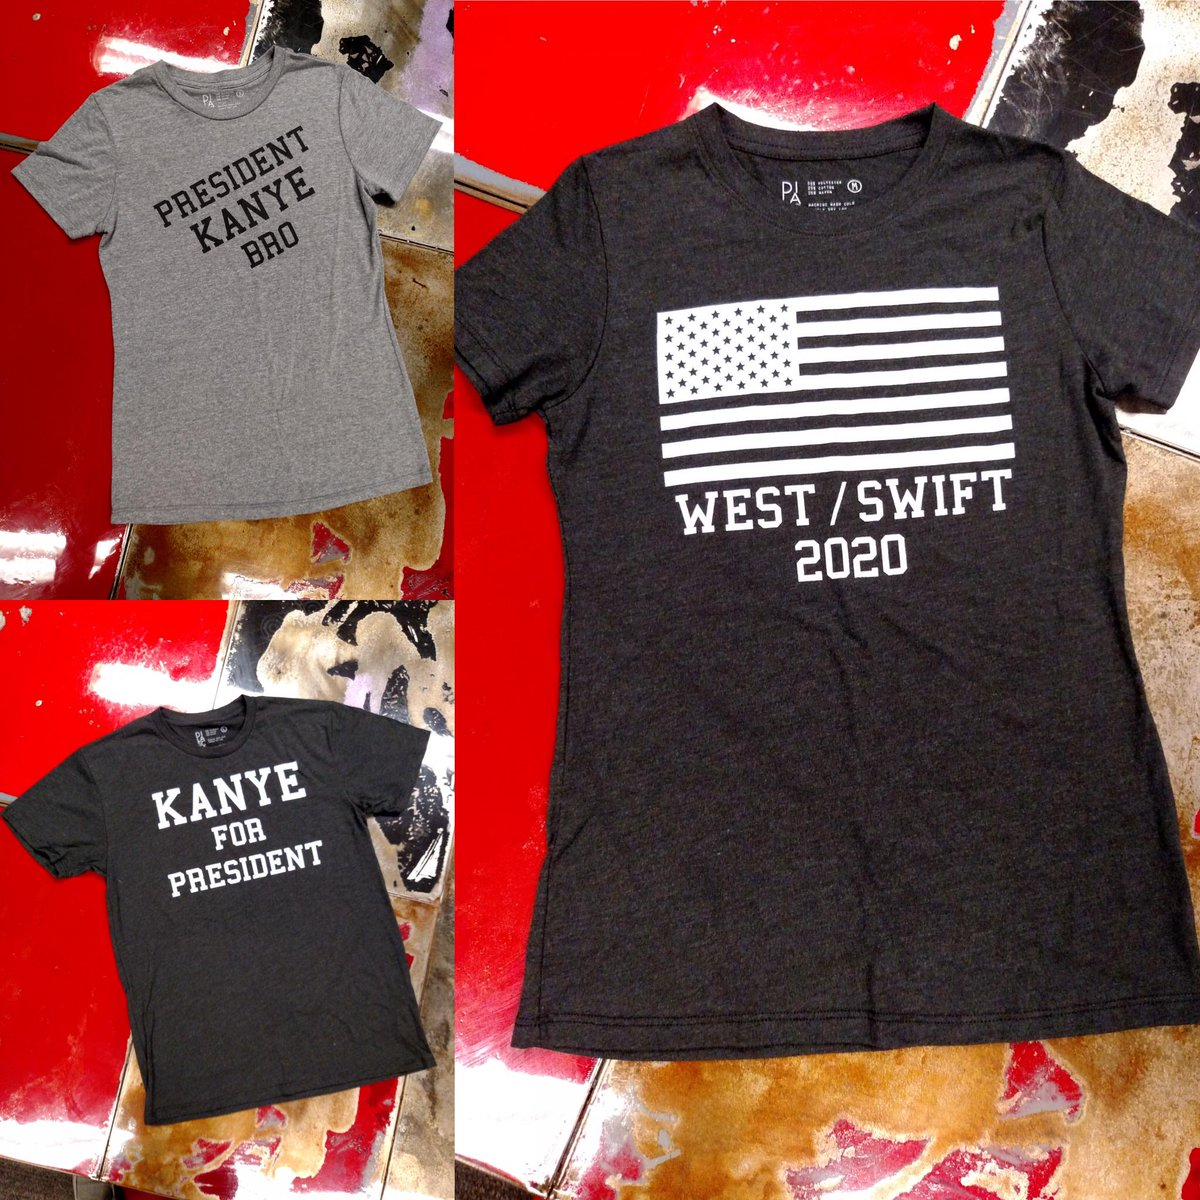 Start campaigning early for the #Kanye #Swift 2020 ticket. Get your gear at the all new http://t.co/oEkcPBXFQ9 http://t.co/RfWYGgWJDL